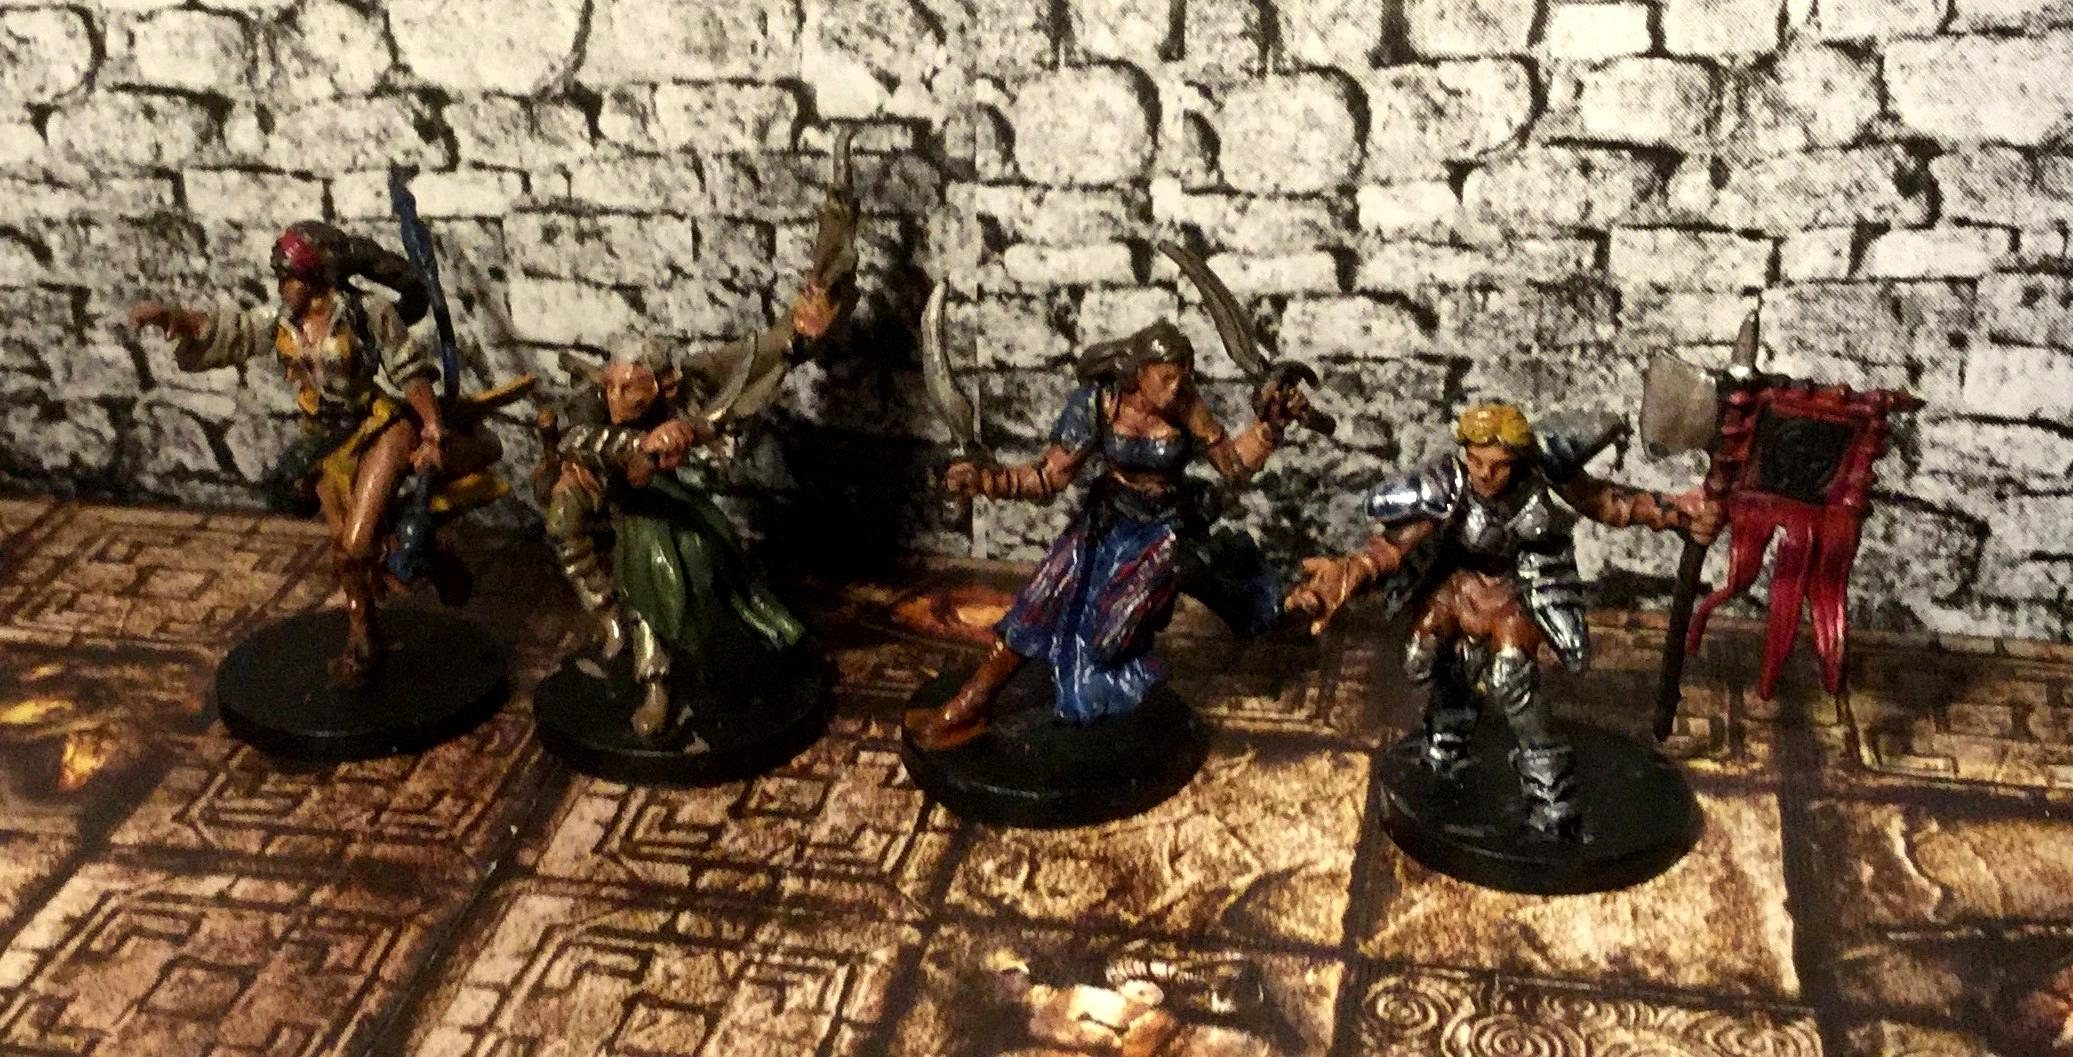 Descent, Ffg, Crusade of the Forgotten - Heroes